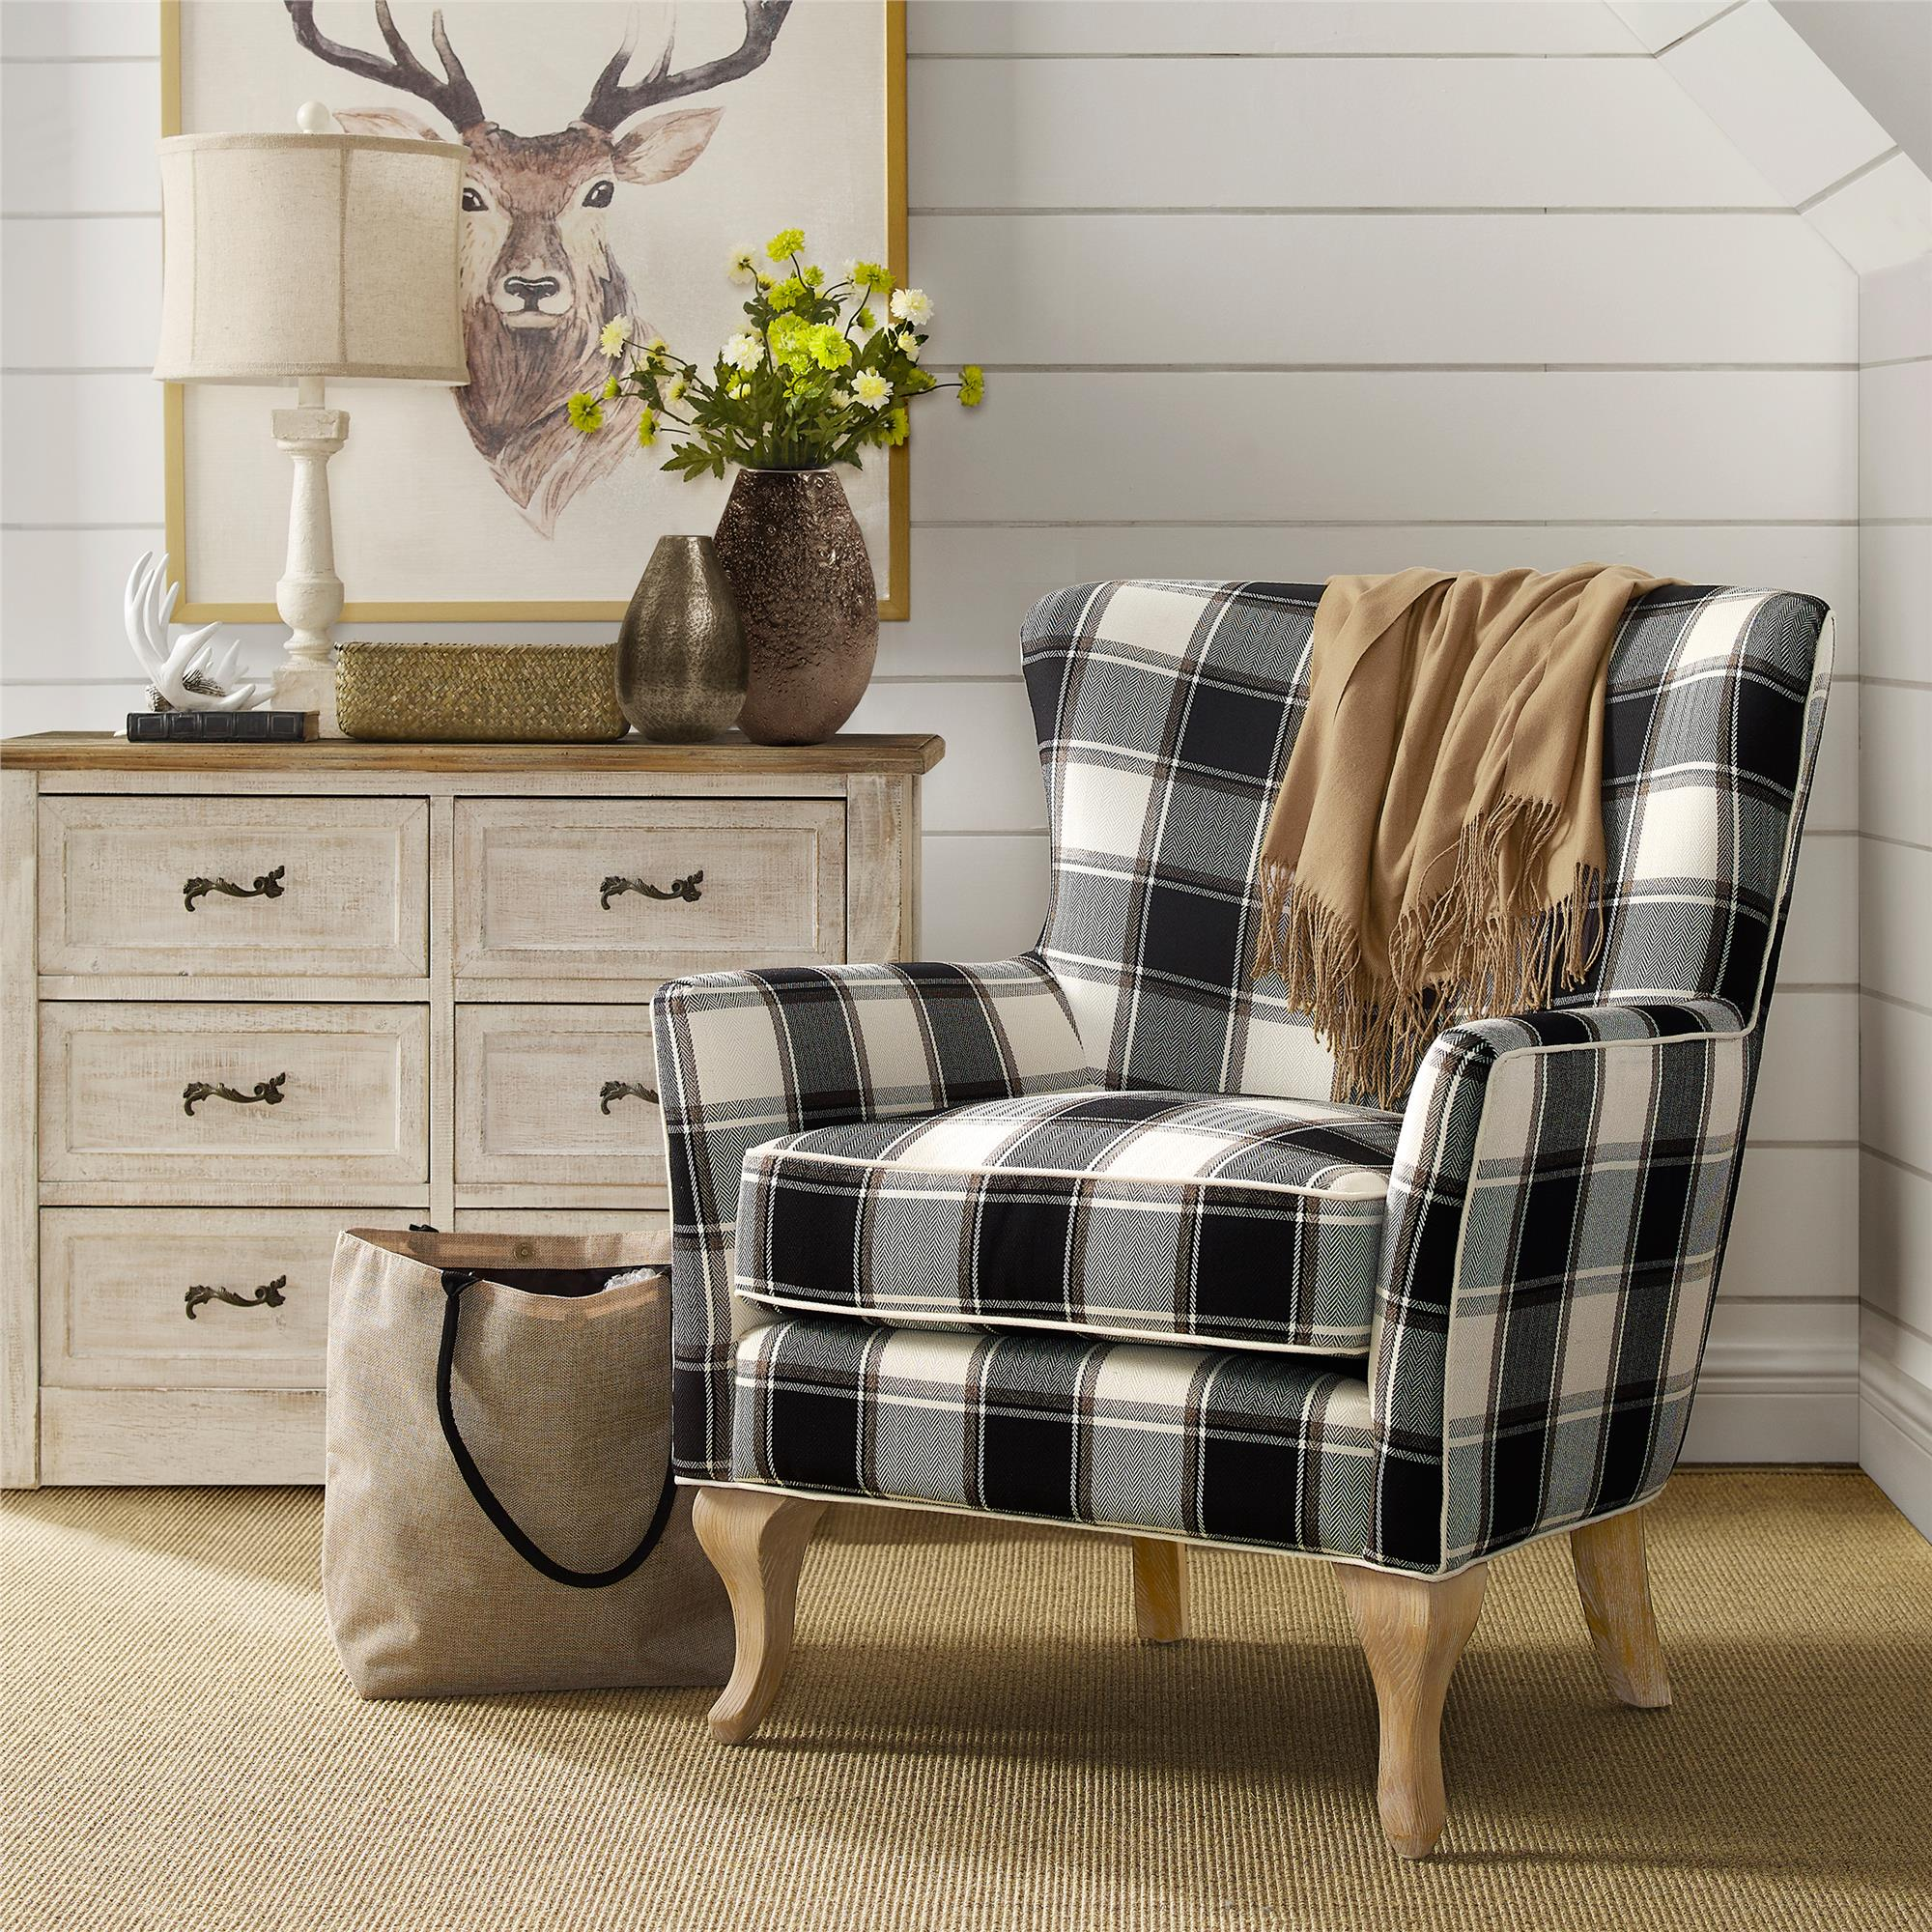 Black And White Accent Chair Dorel Living Middlebury Checkered Pattern Accent Chair Black White Checkered